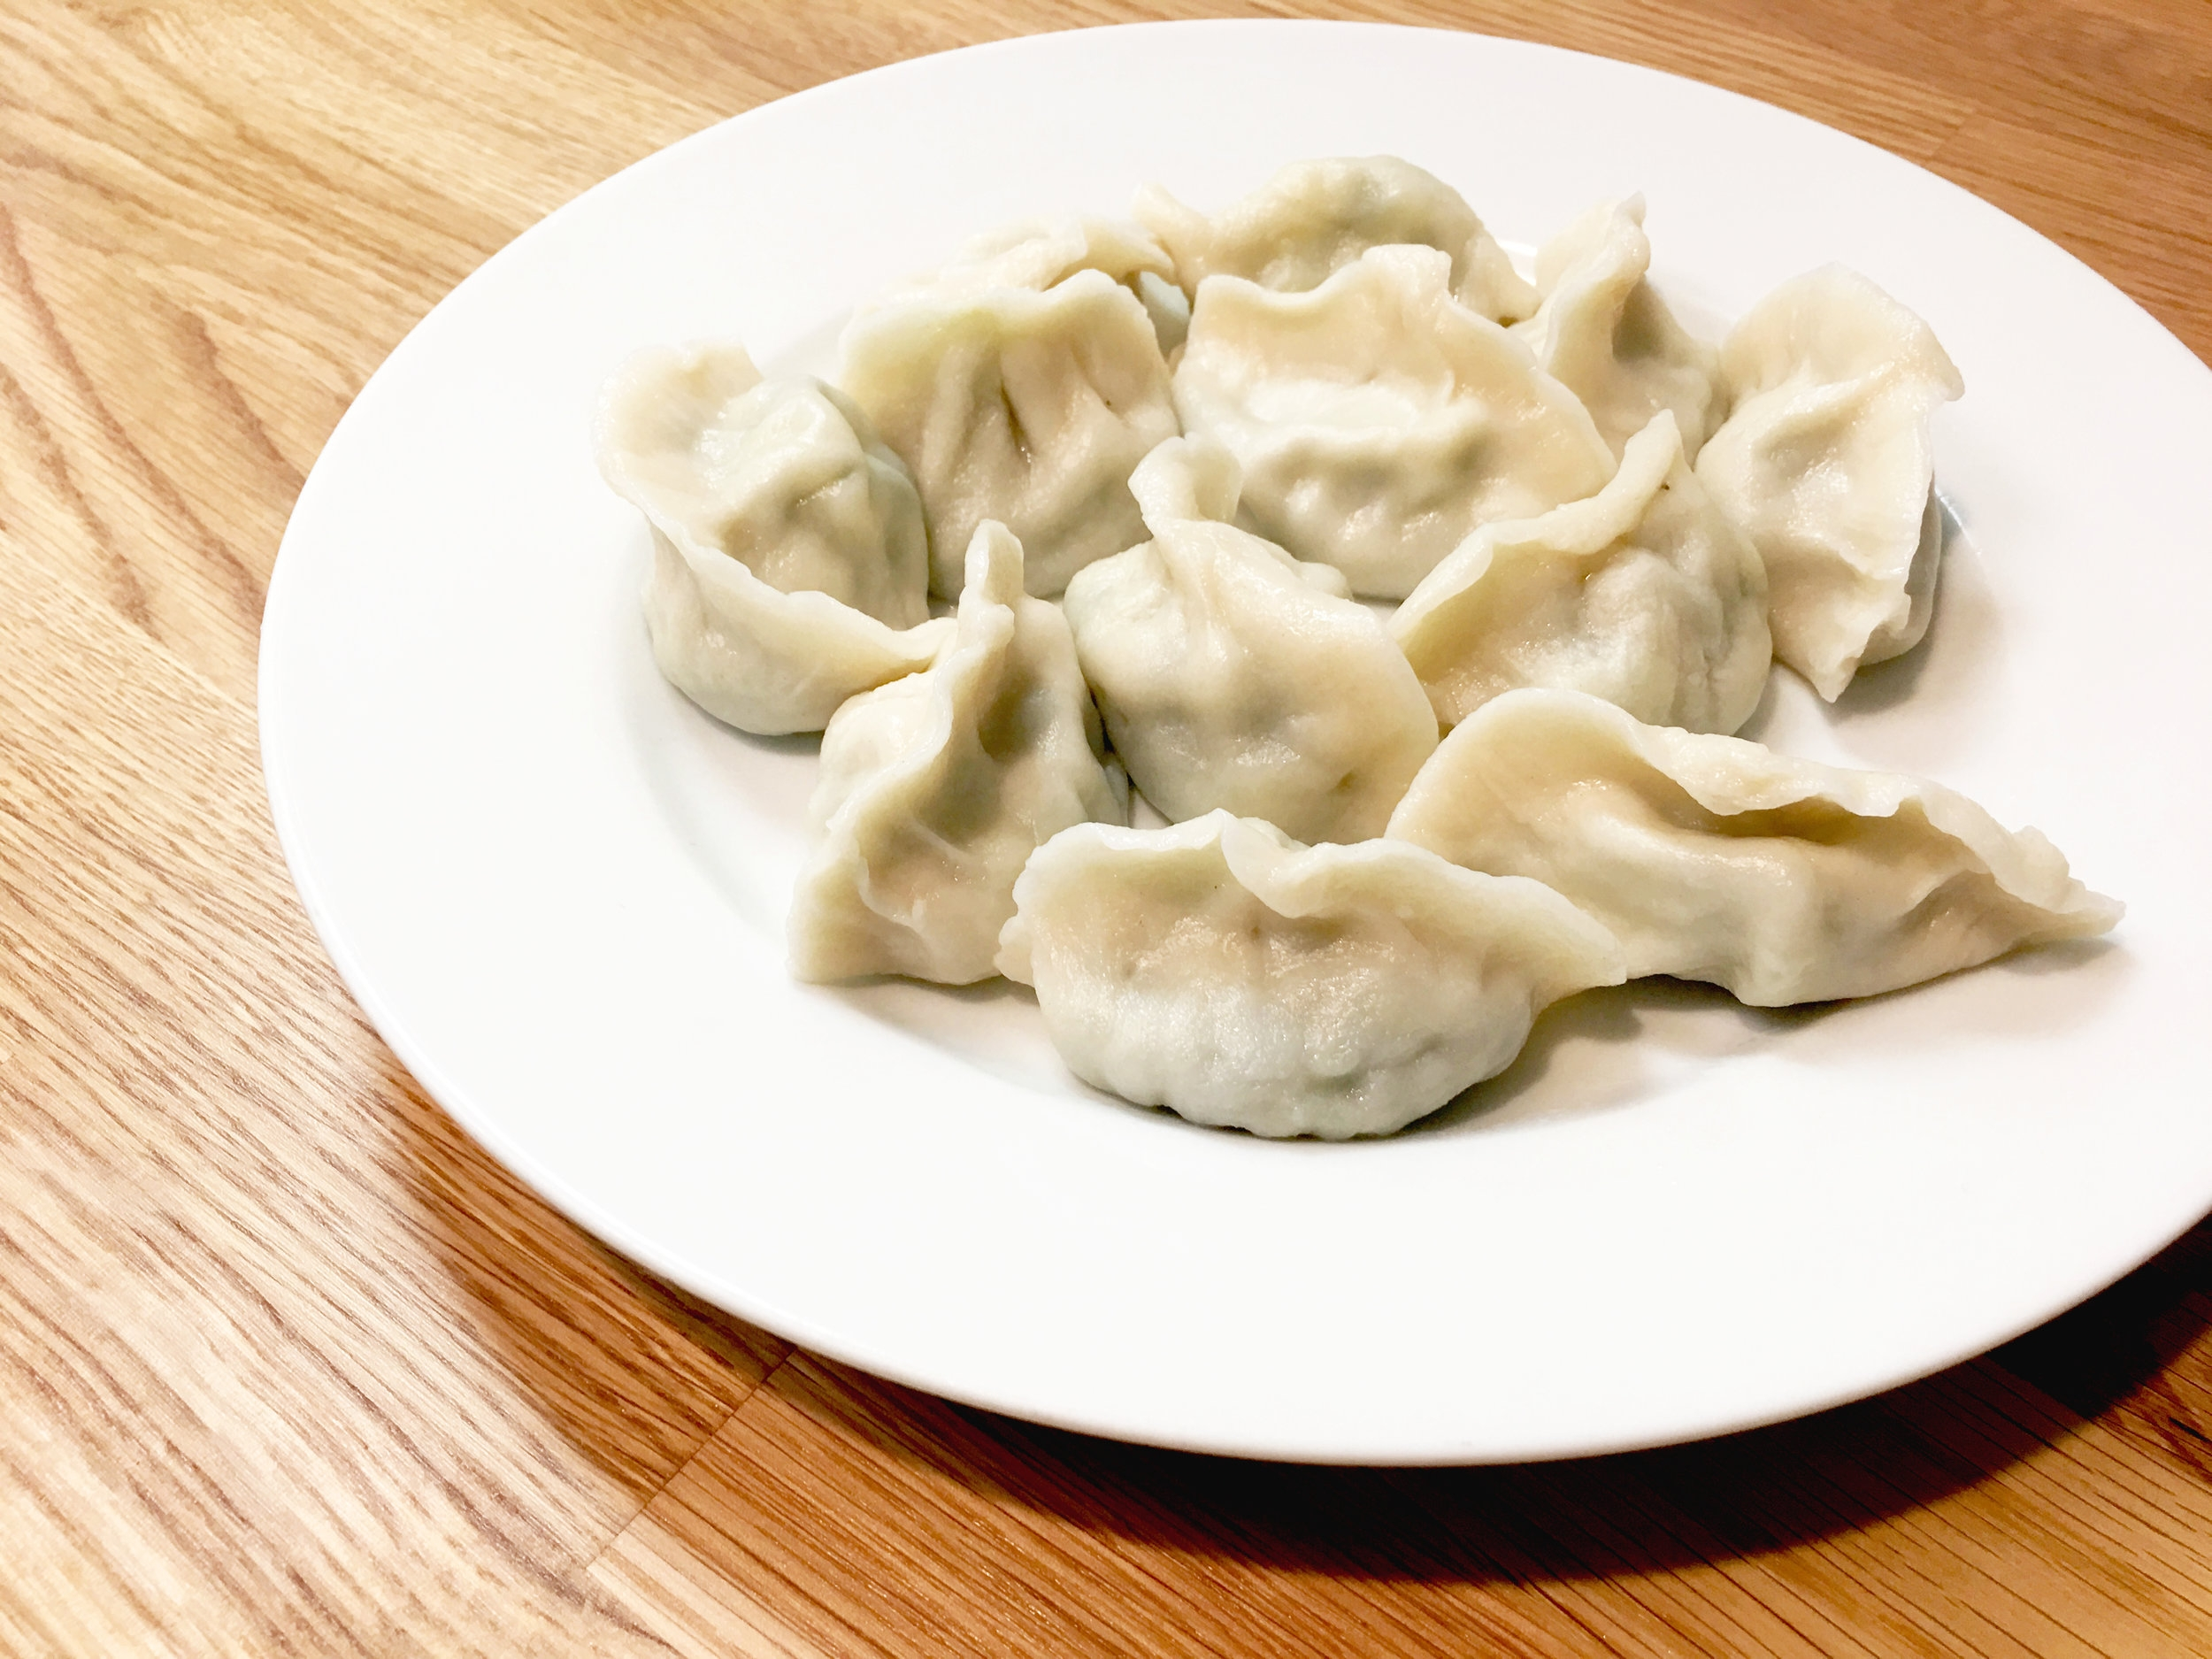 Mama's Dumplings   妈妈的饺子   Made from scratch right here in Mama's kitchen!